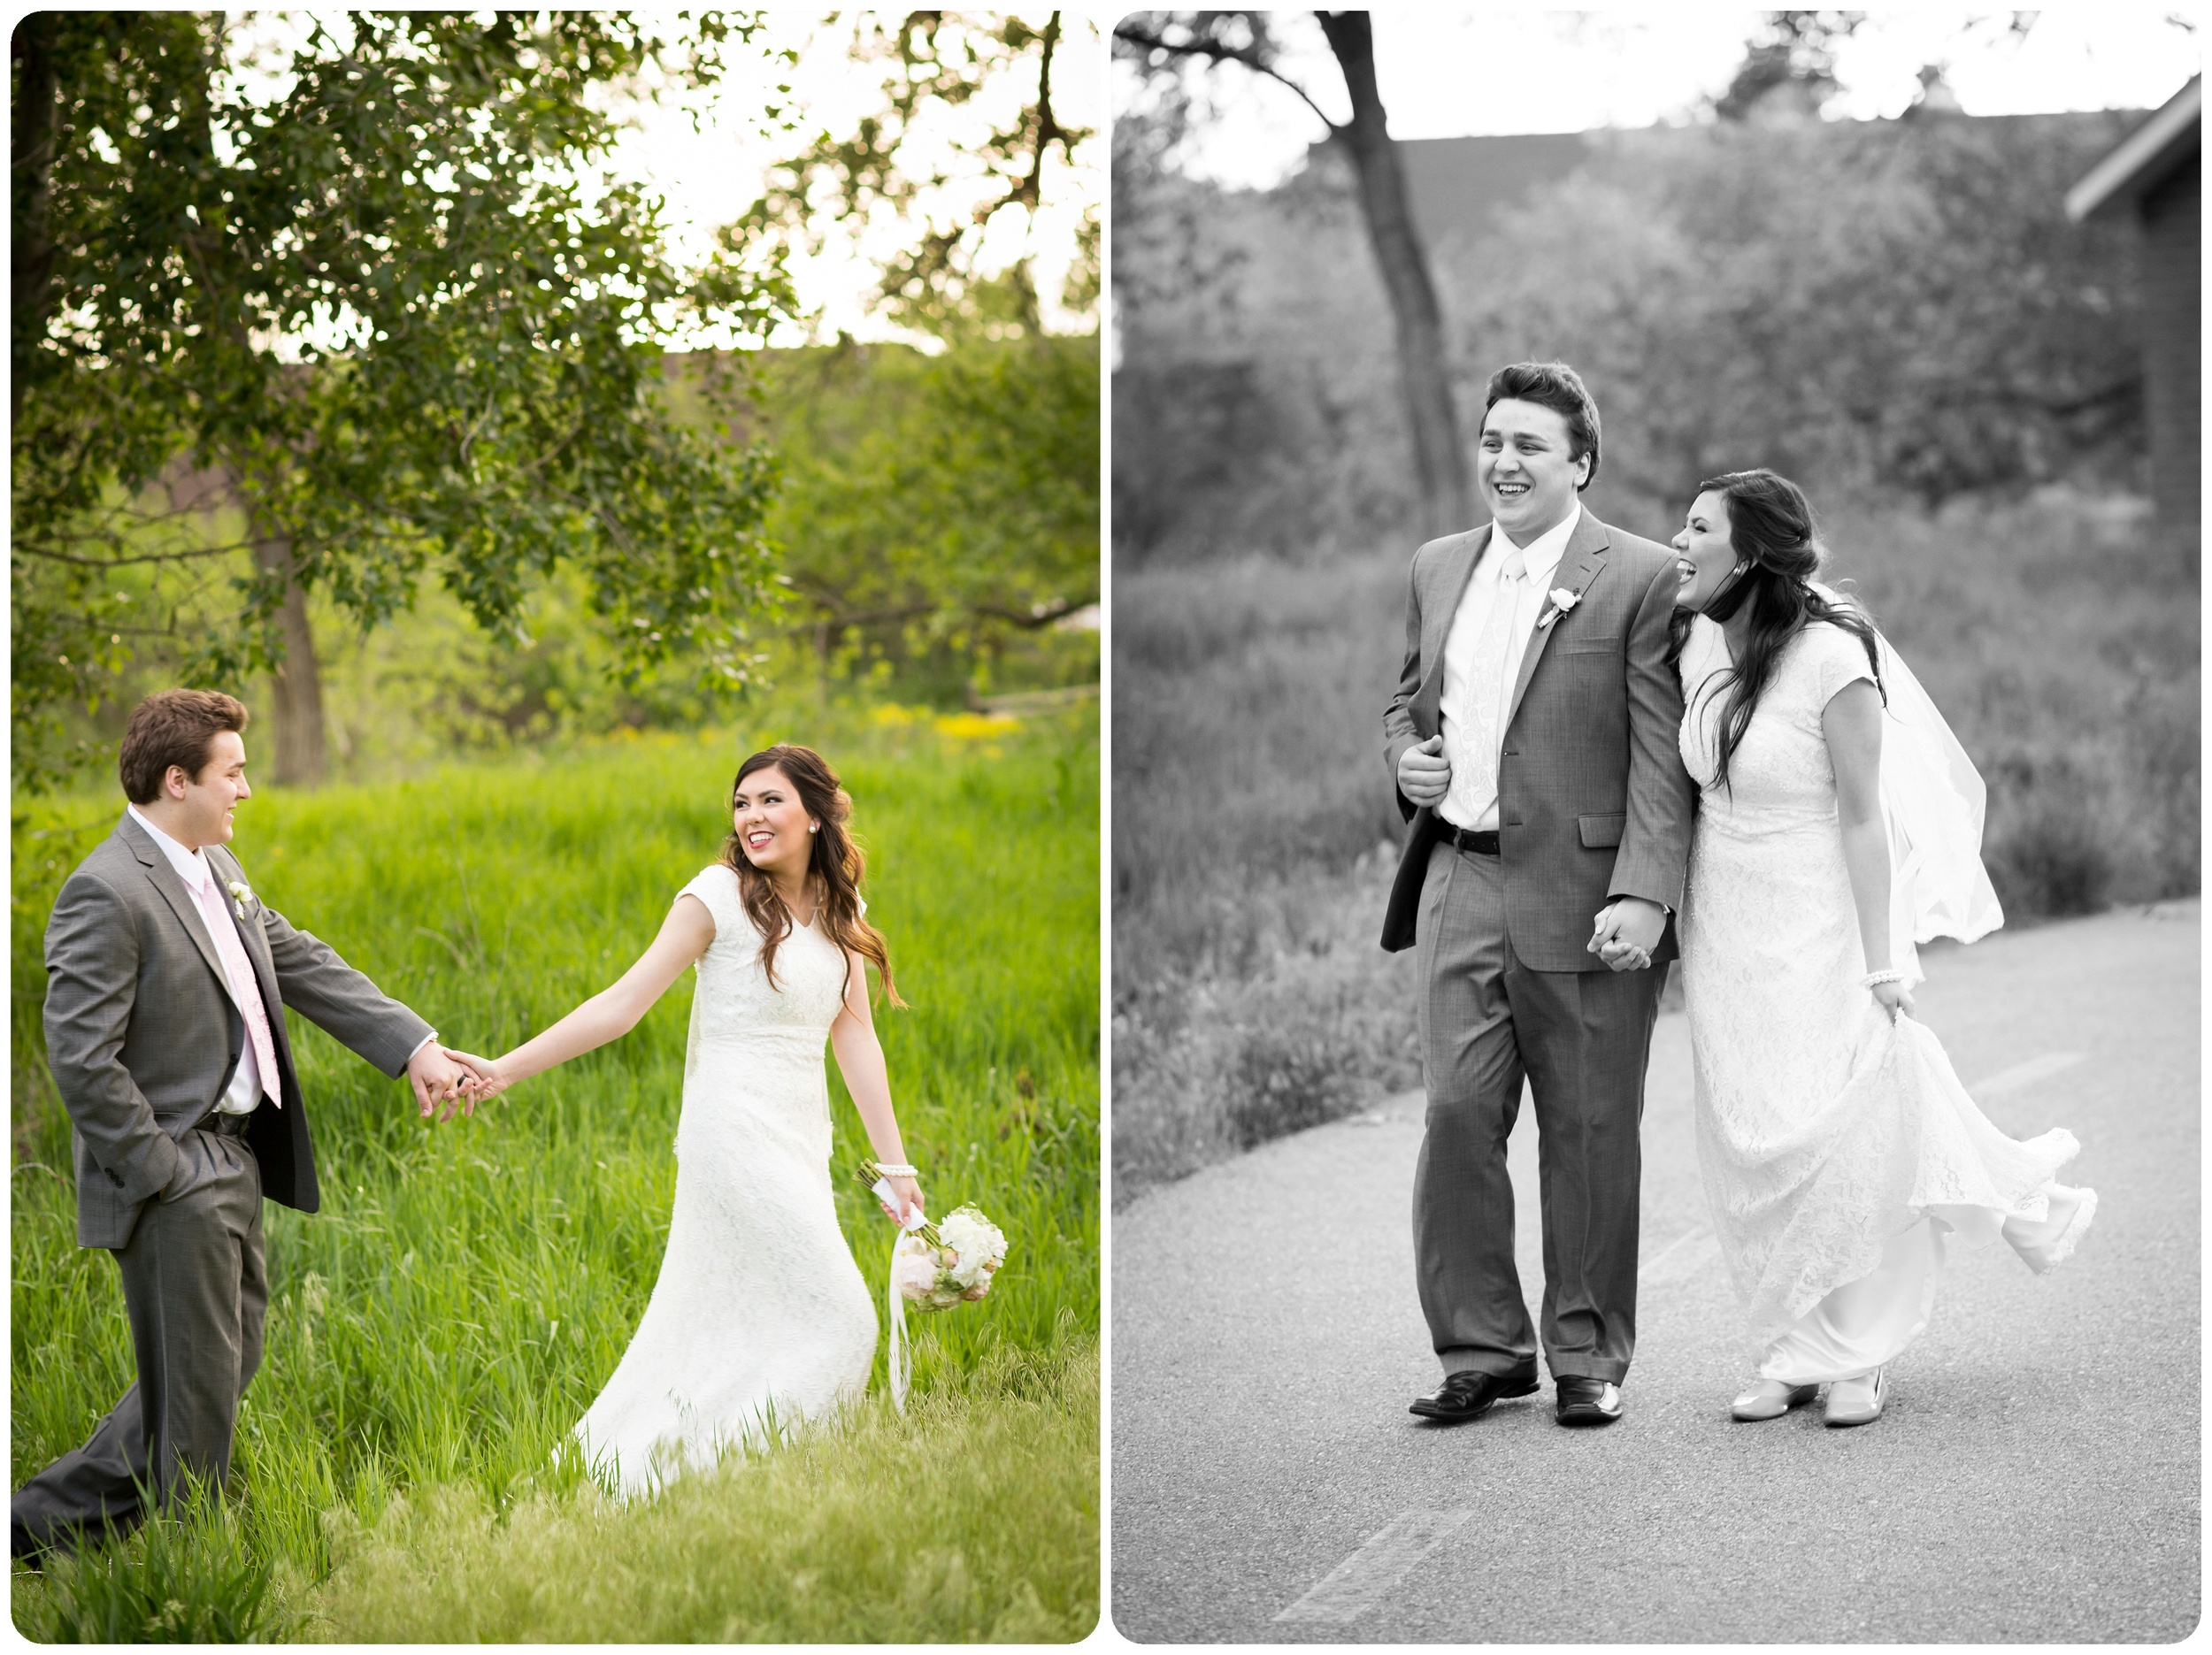 Rachel Lindsey Photography | Salt Lake City, UT | Engagements & Wedding Photographer